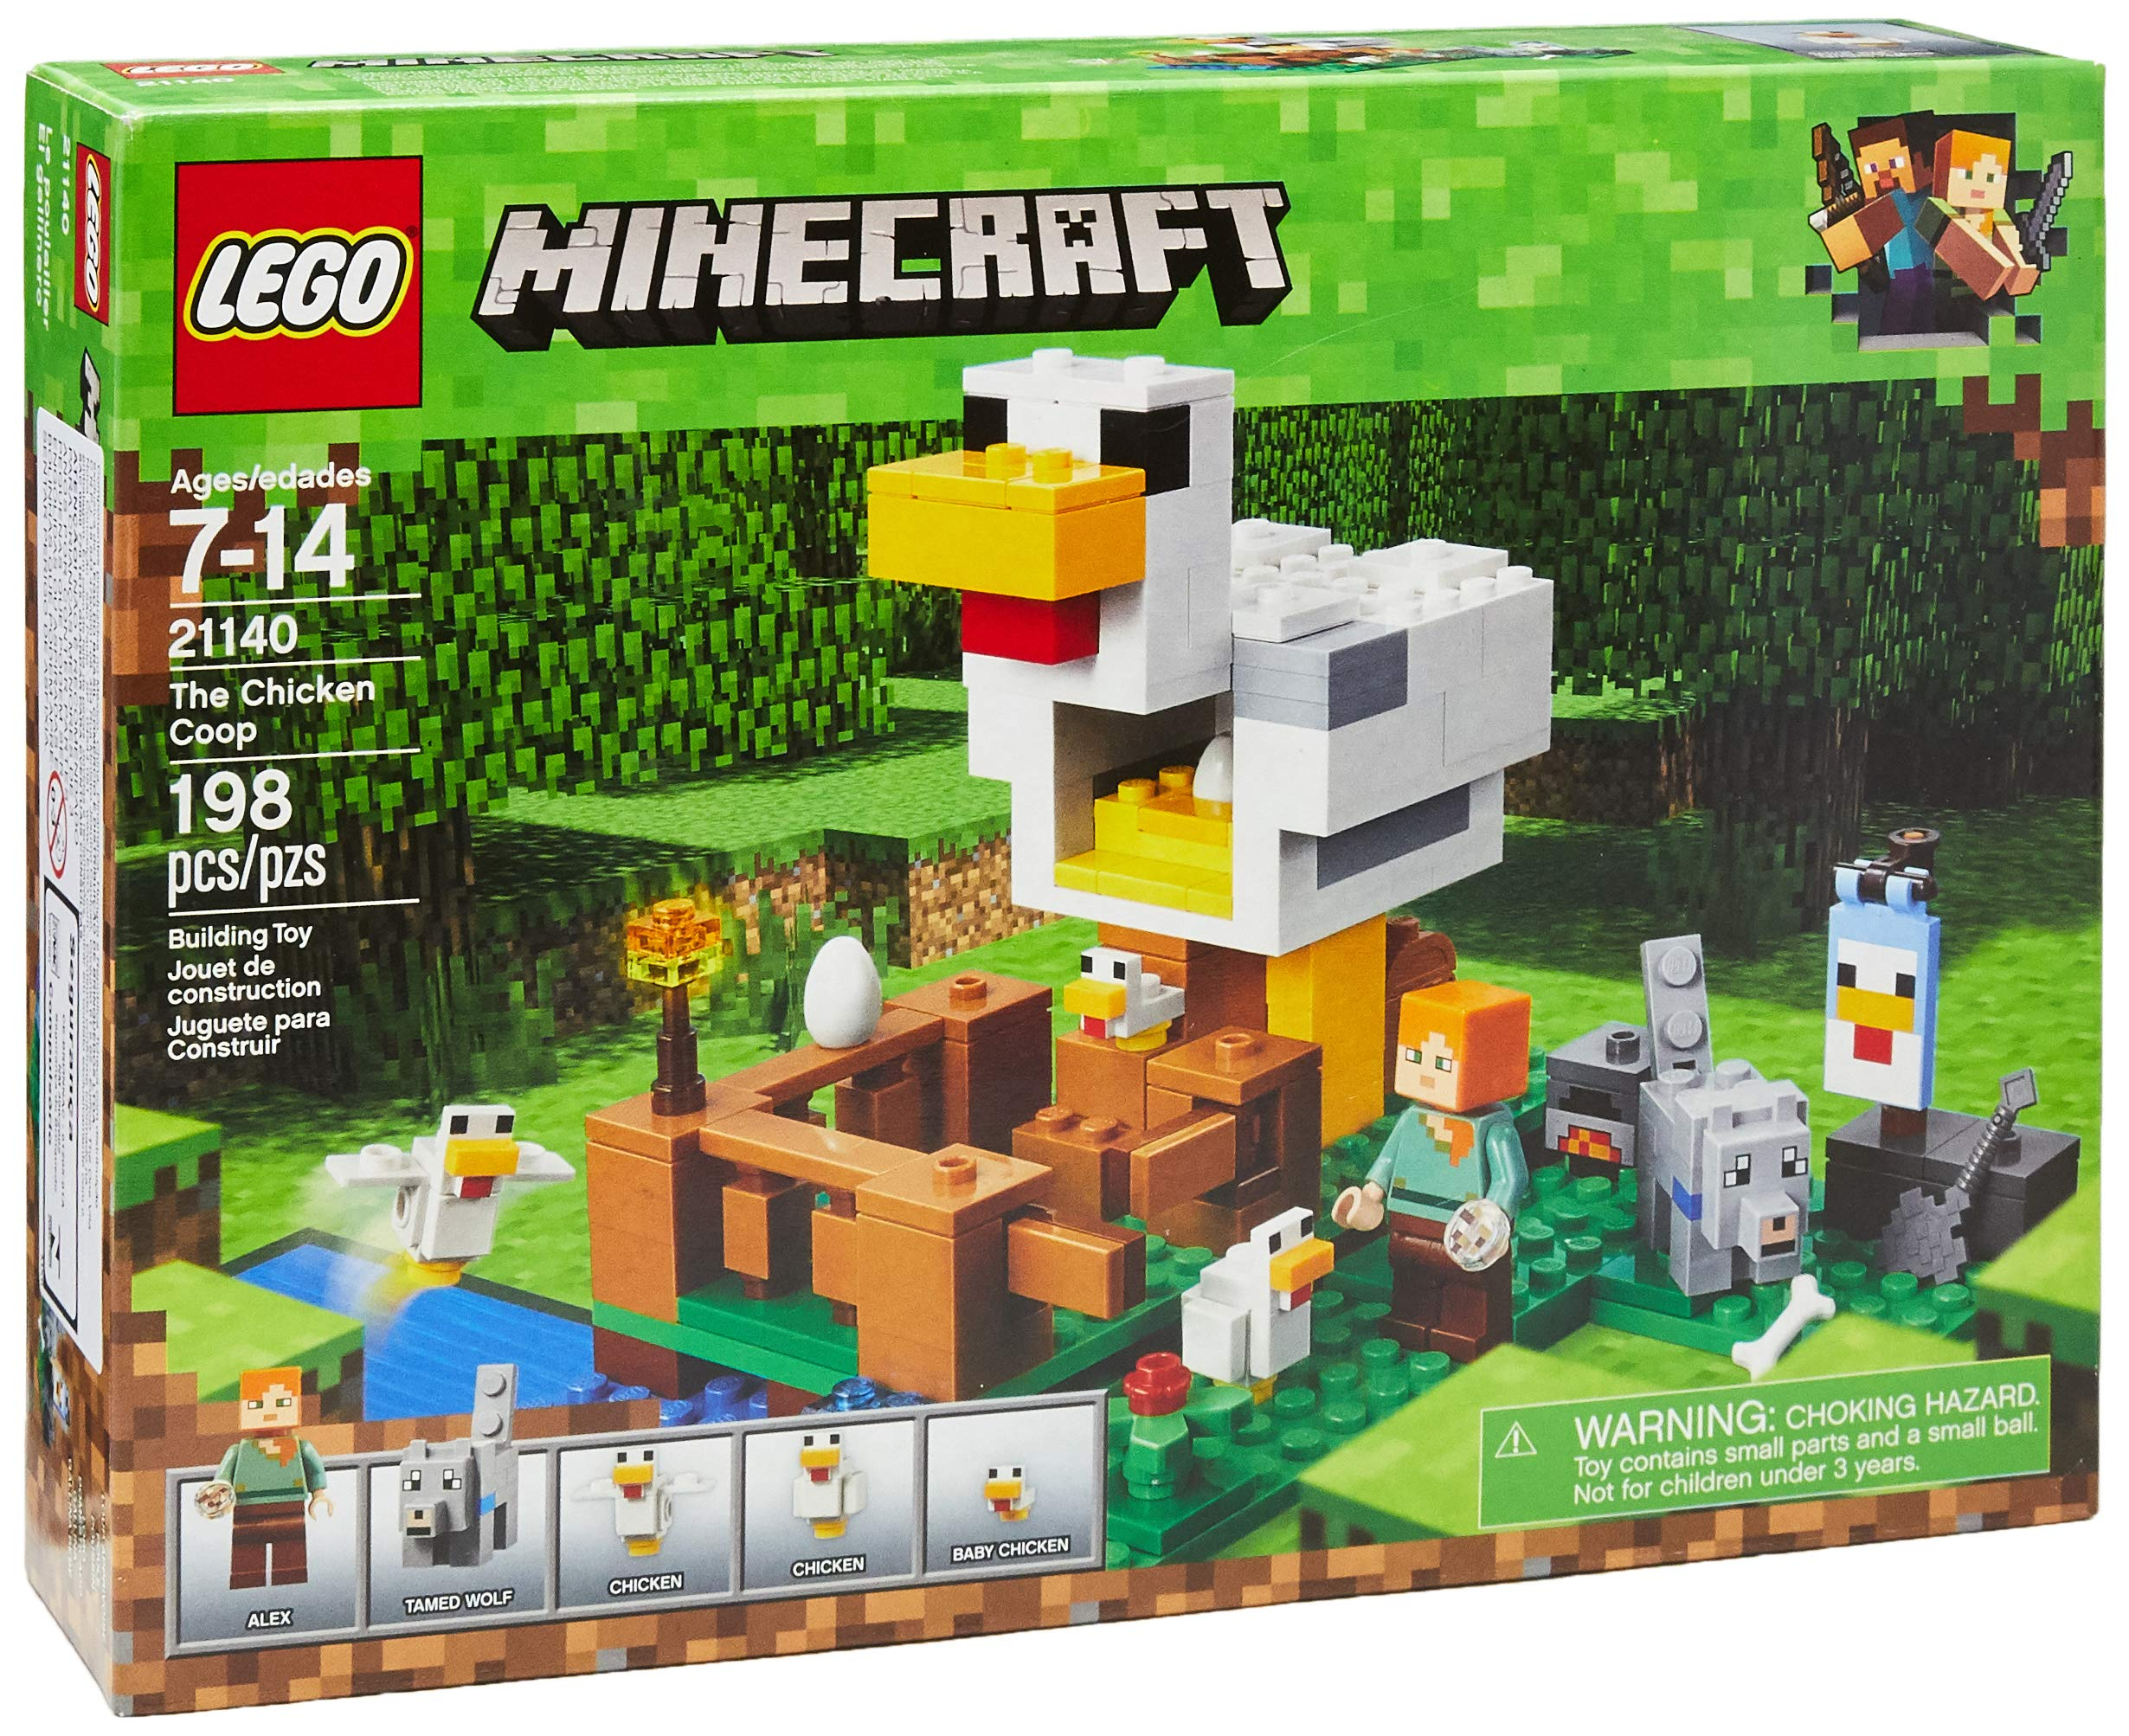 LEGO Minecraft The Chicken Coop 21140 Building Kit (198 Pieces) by LEGO